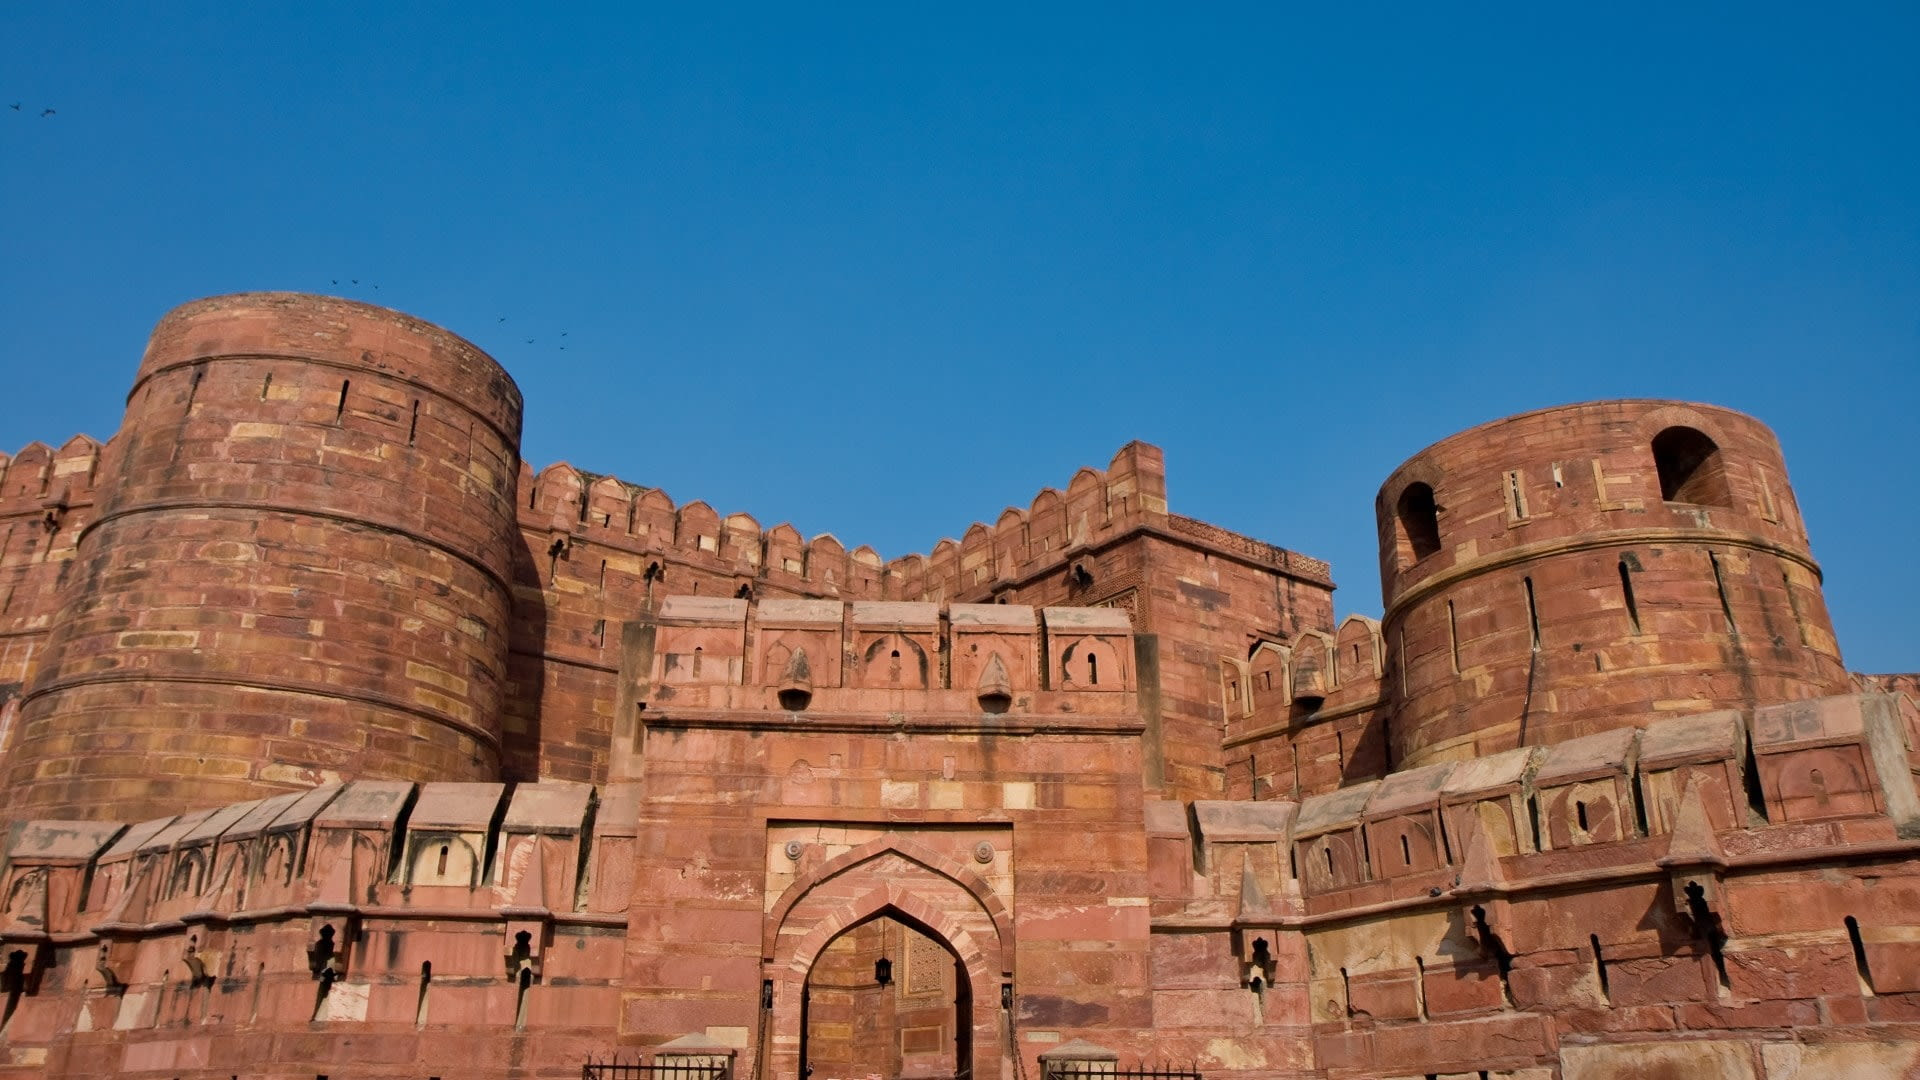 Out Side part of Agra Fort